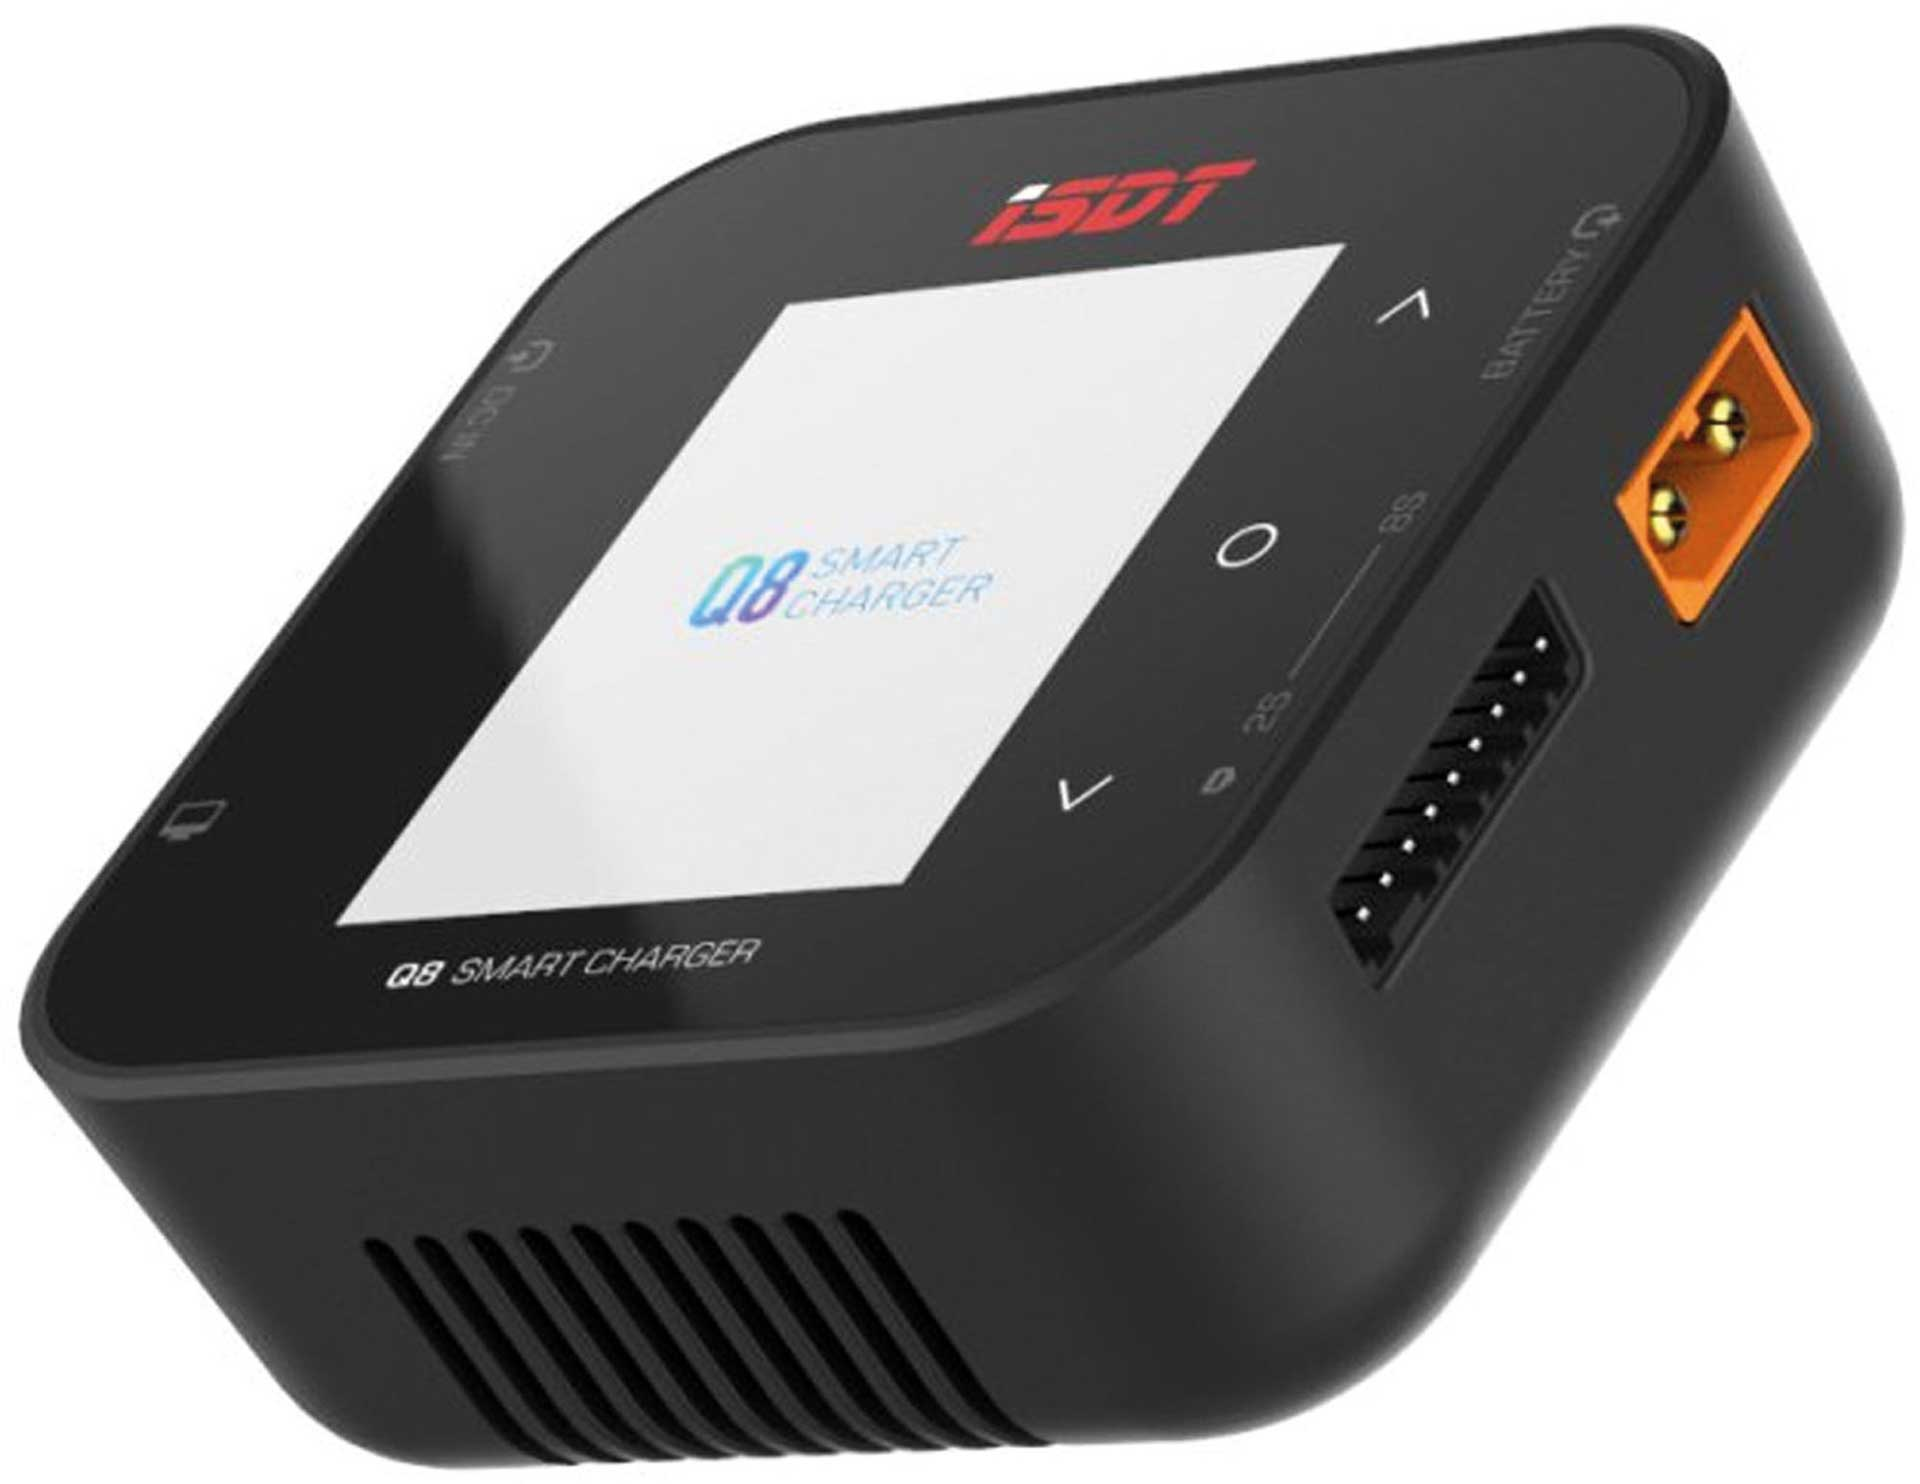 ISDT Q8 SMART CHARGER 500W MAX. 20A 1-7(8)S Ladegerät